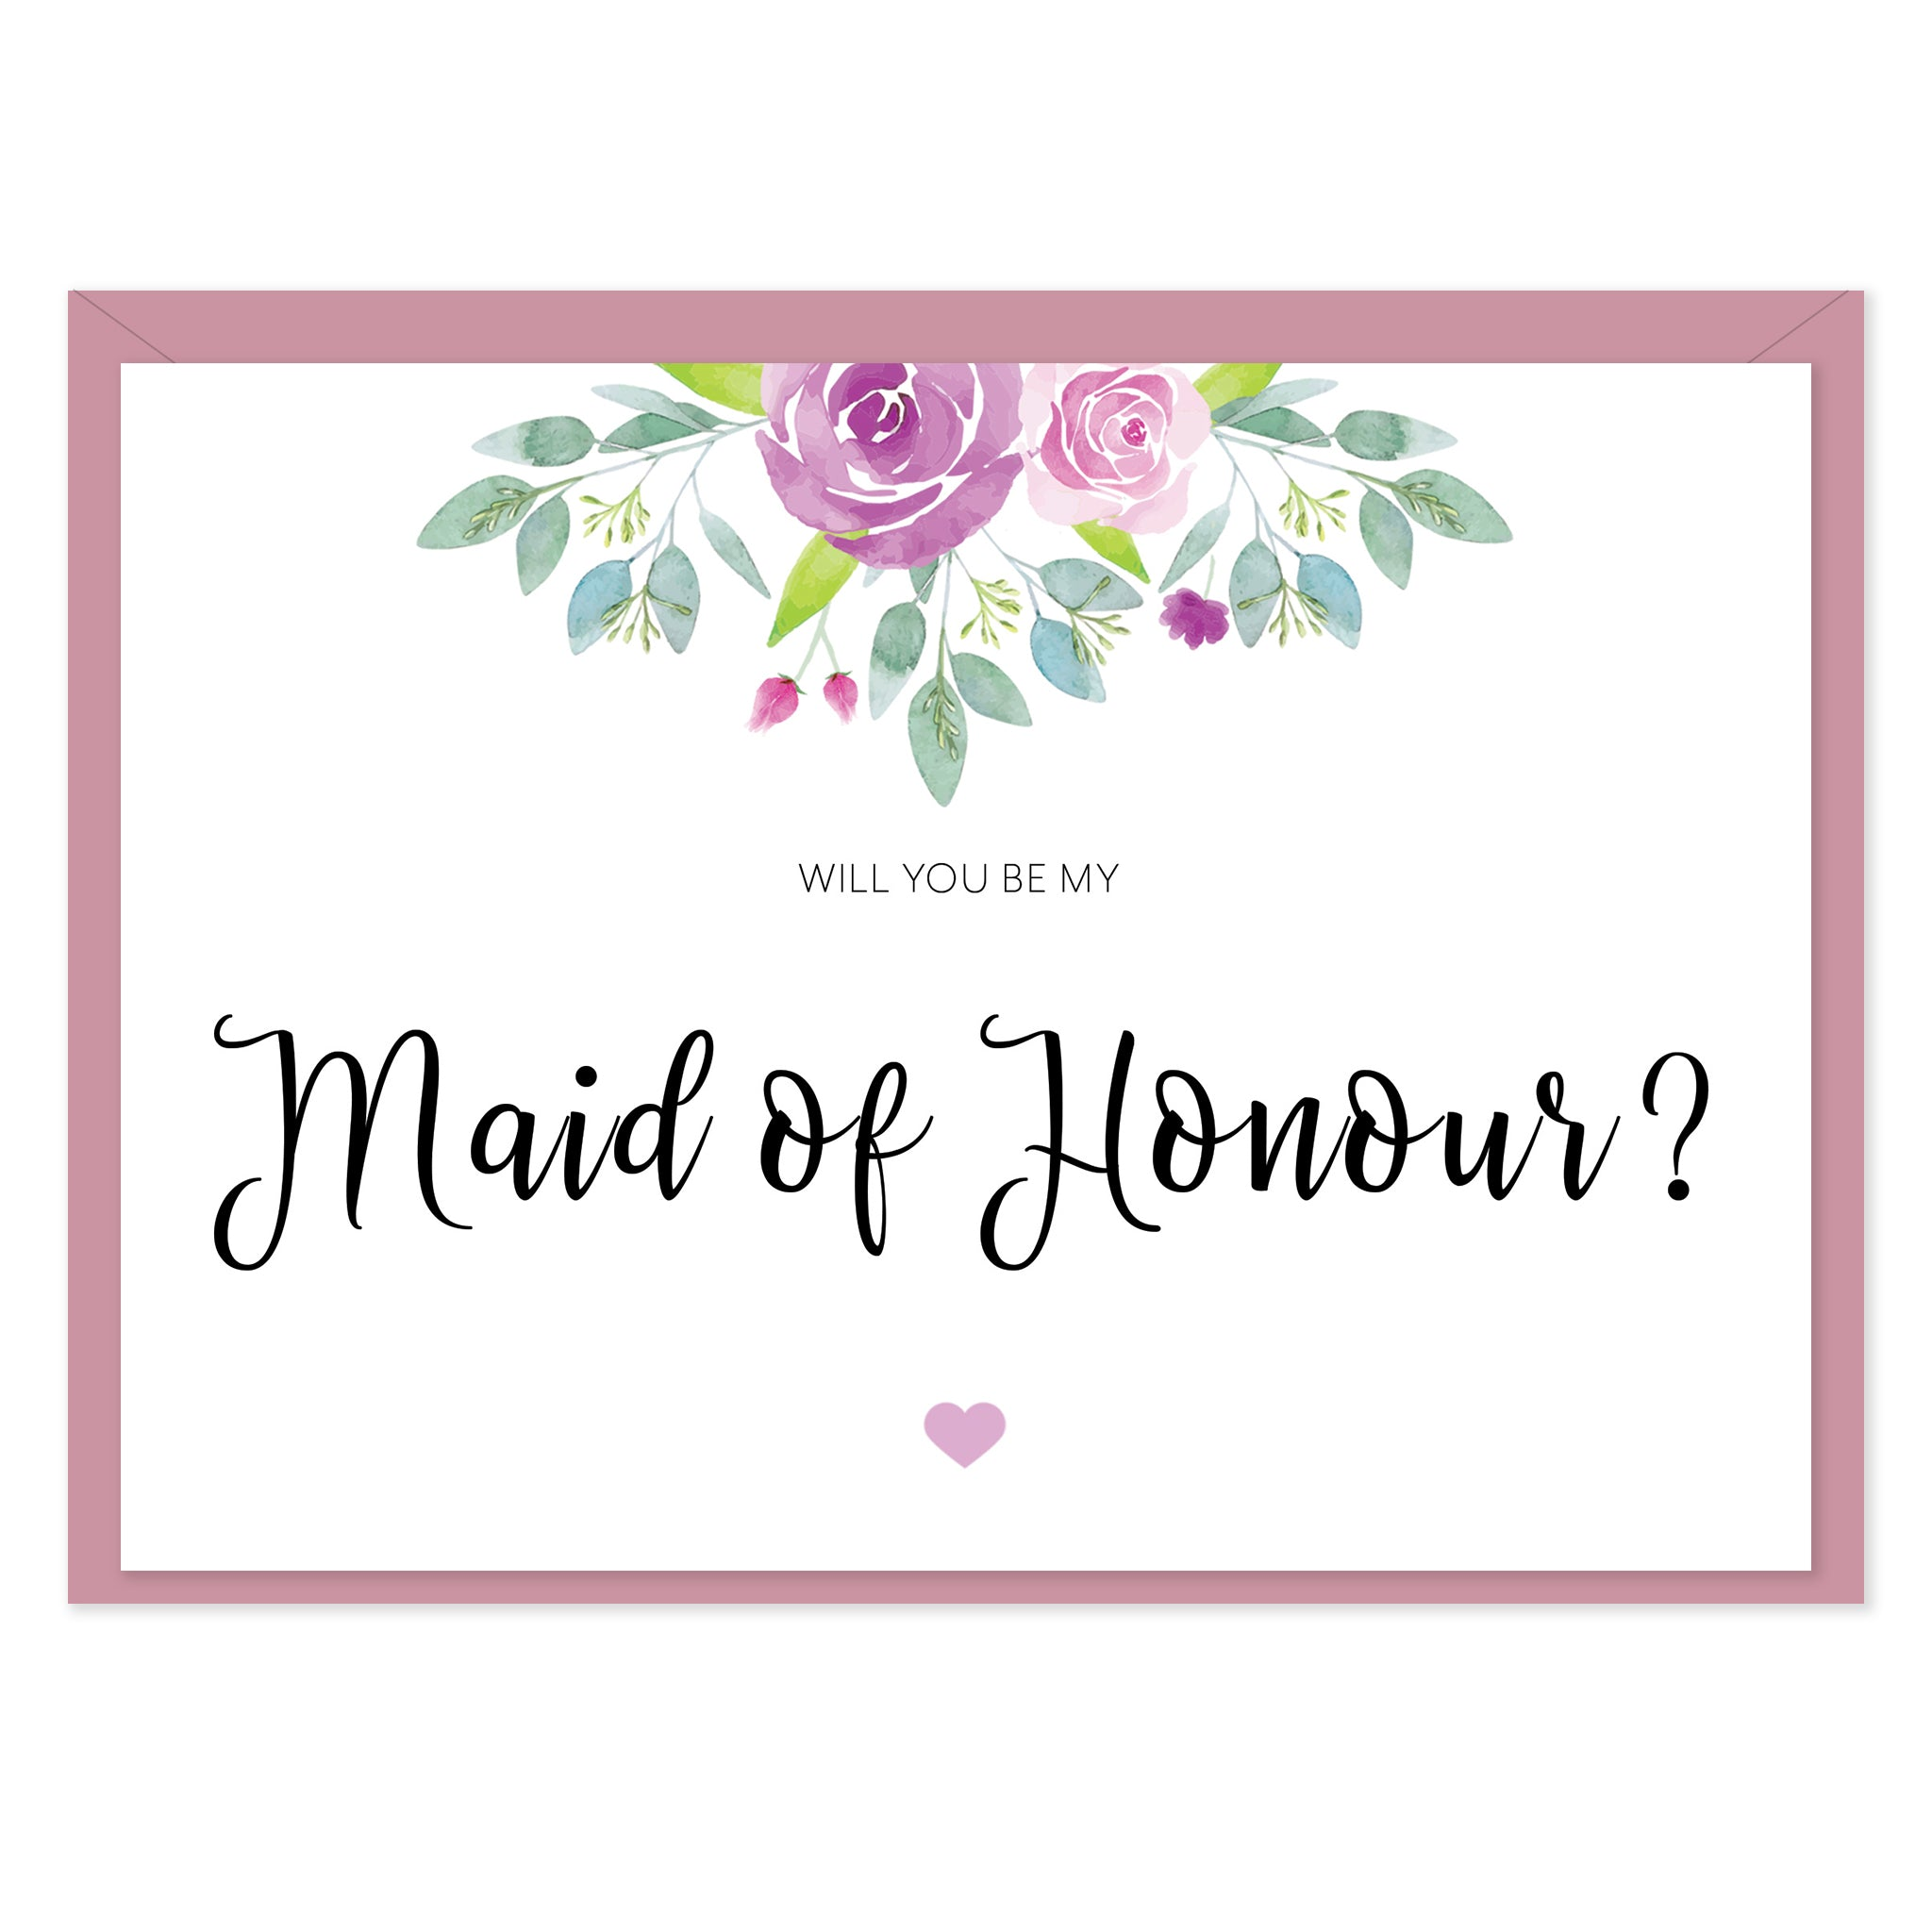 Flora 'Will You Be My Maid of Honour?' Card